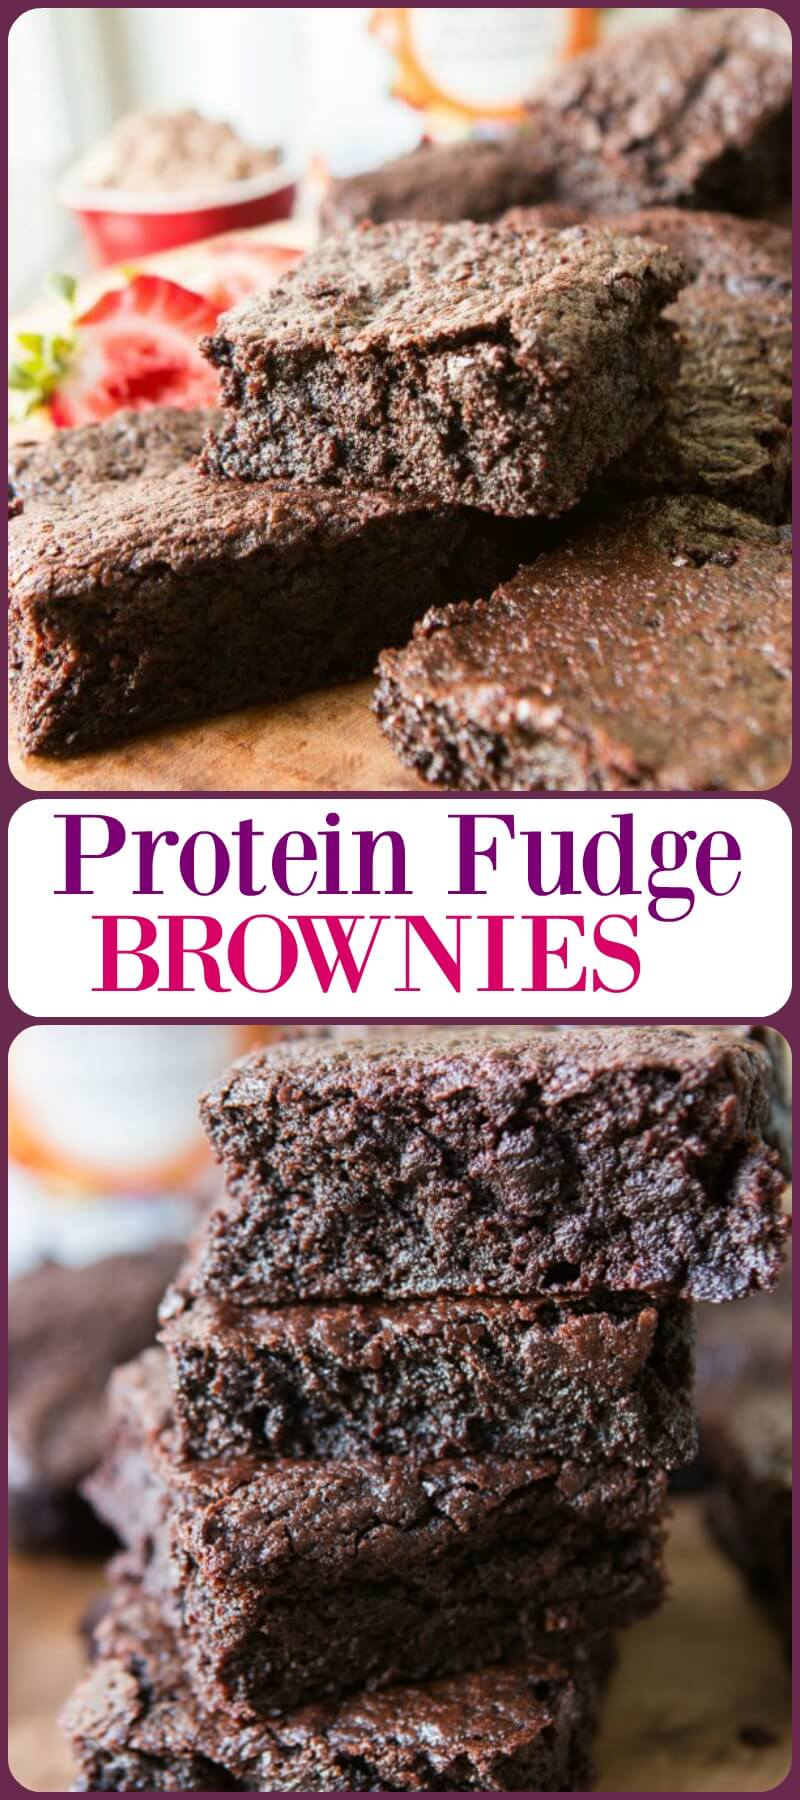 Protein fudge brownies? Protein powder, coconut oil, and less flour can make healthier, delicious brownies with more nutrition! ohsweetbasil.com